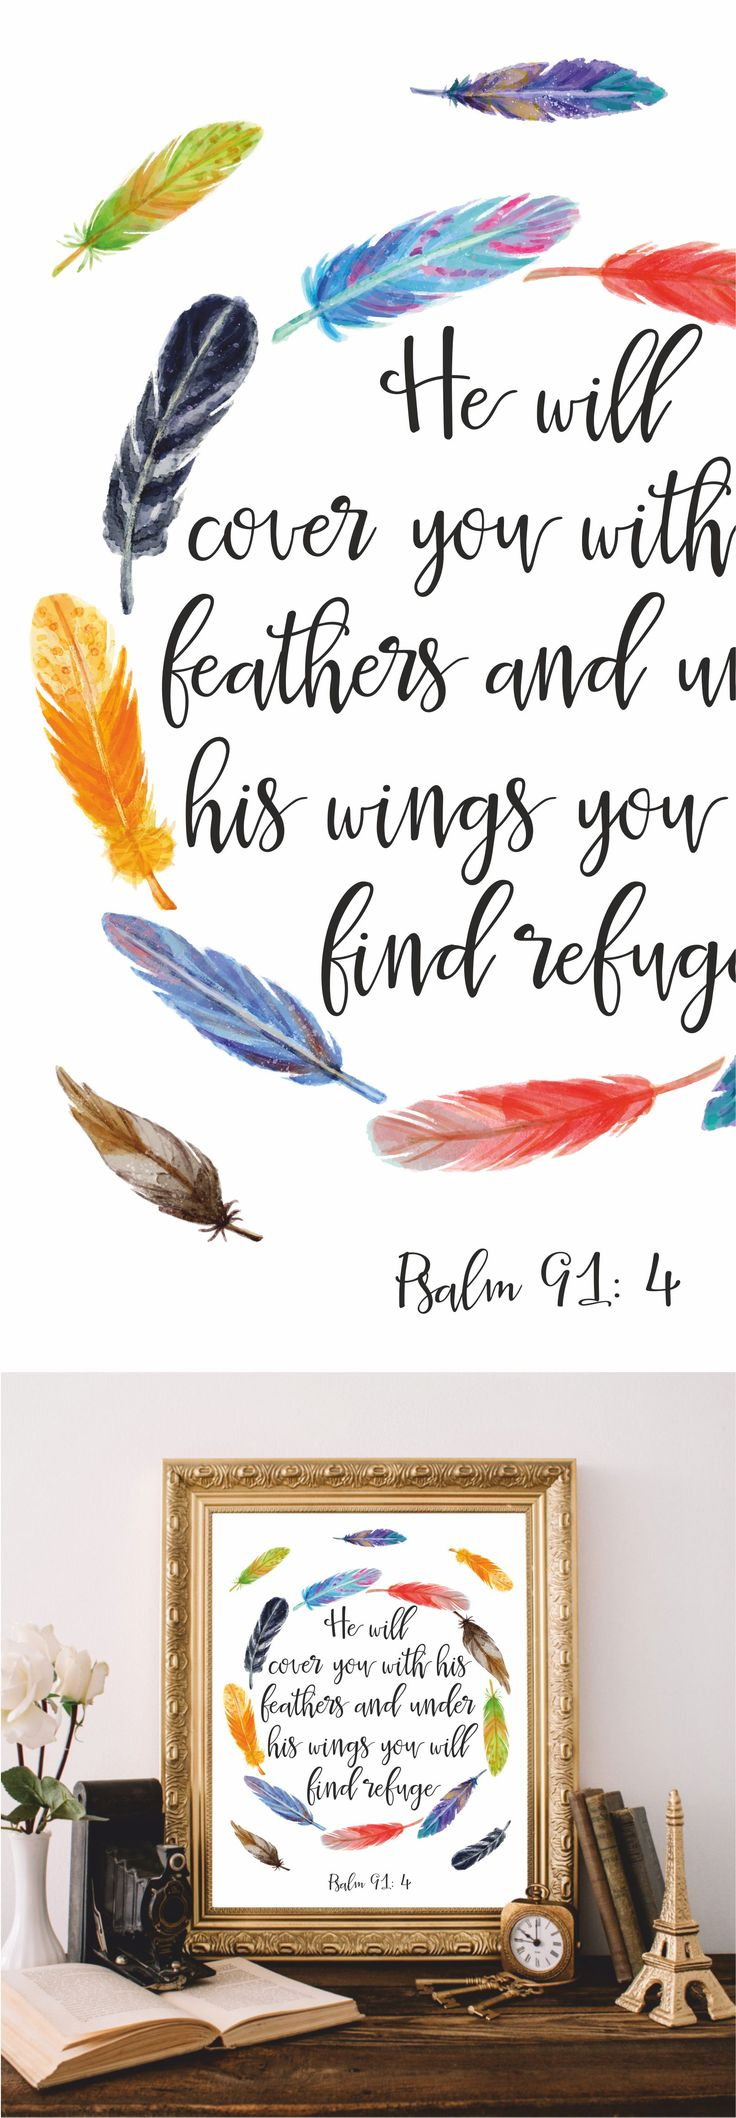 best 25 christian wall art ideas on pinterest christian art bible verse he will cover you psalm 91 4 christian wall art printable bible verse wall art bible quote scripture print watercolor feathers